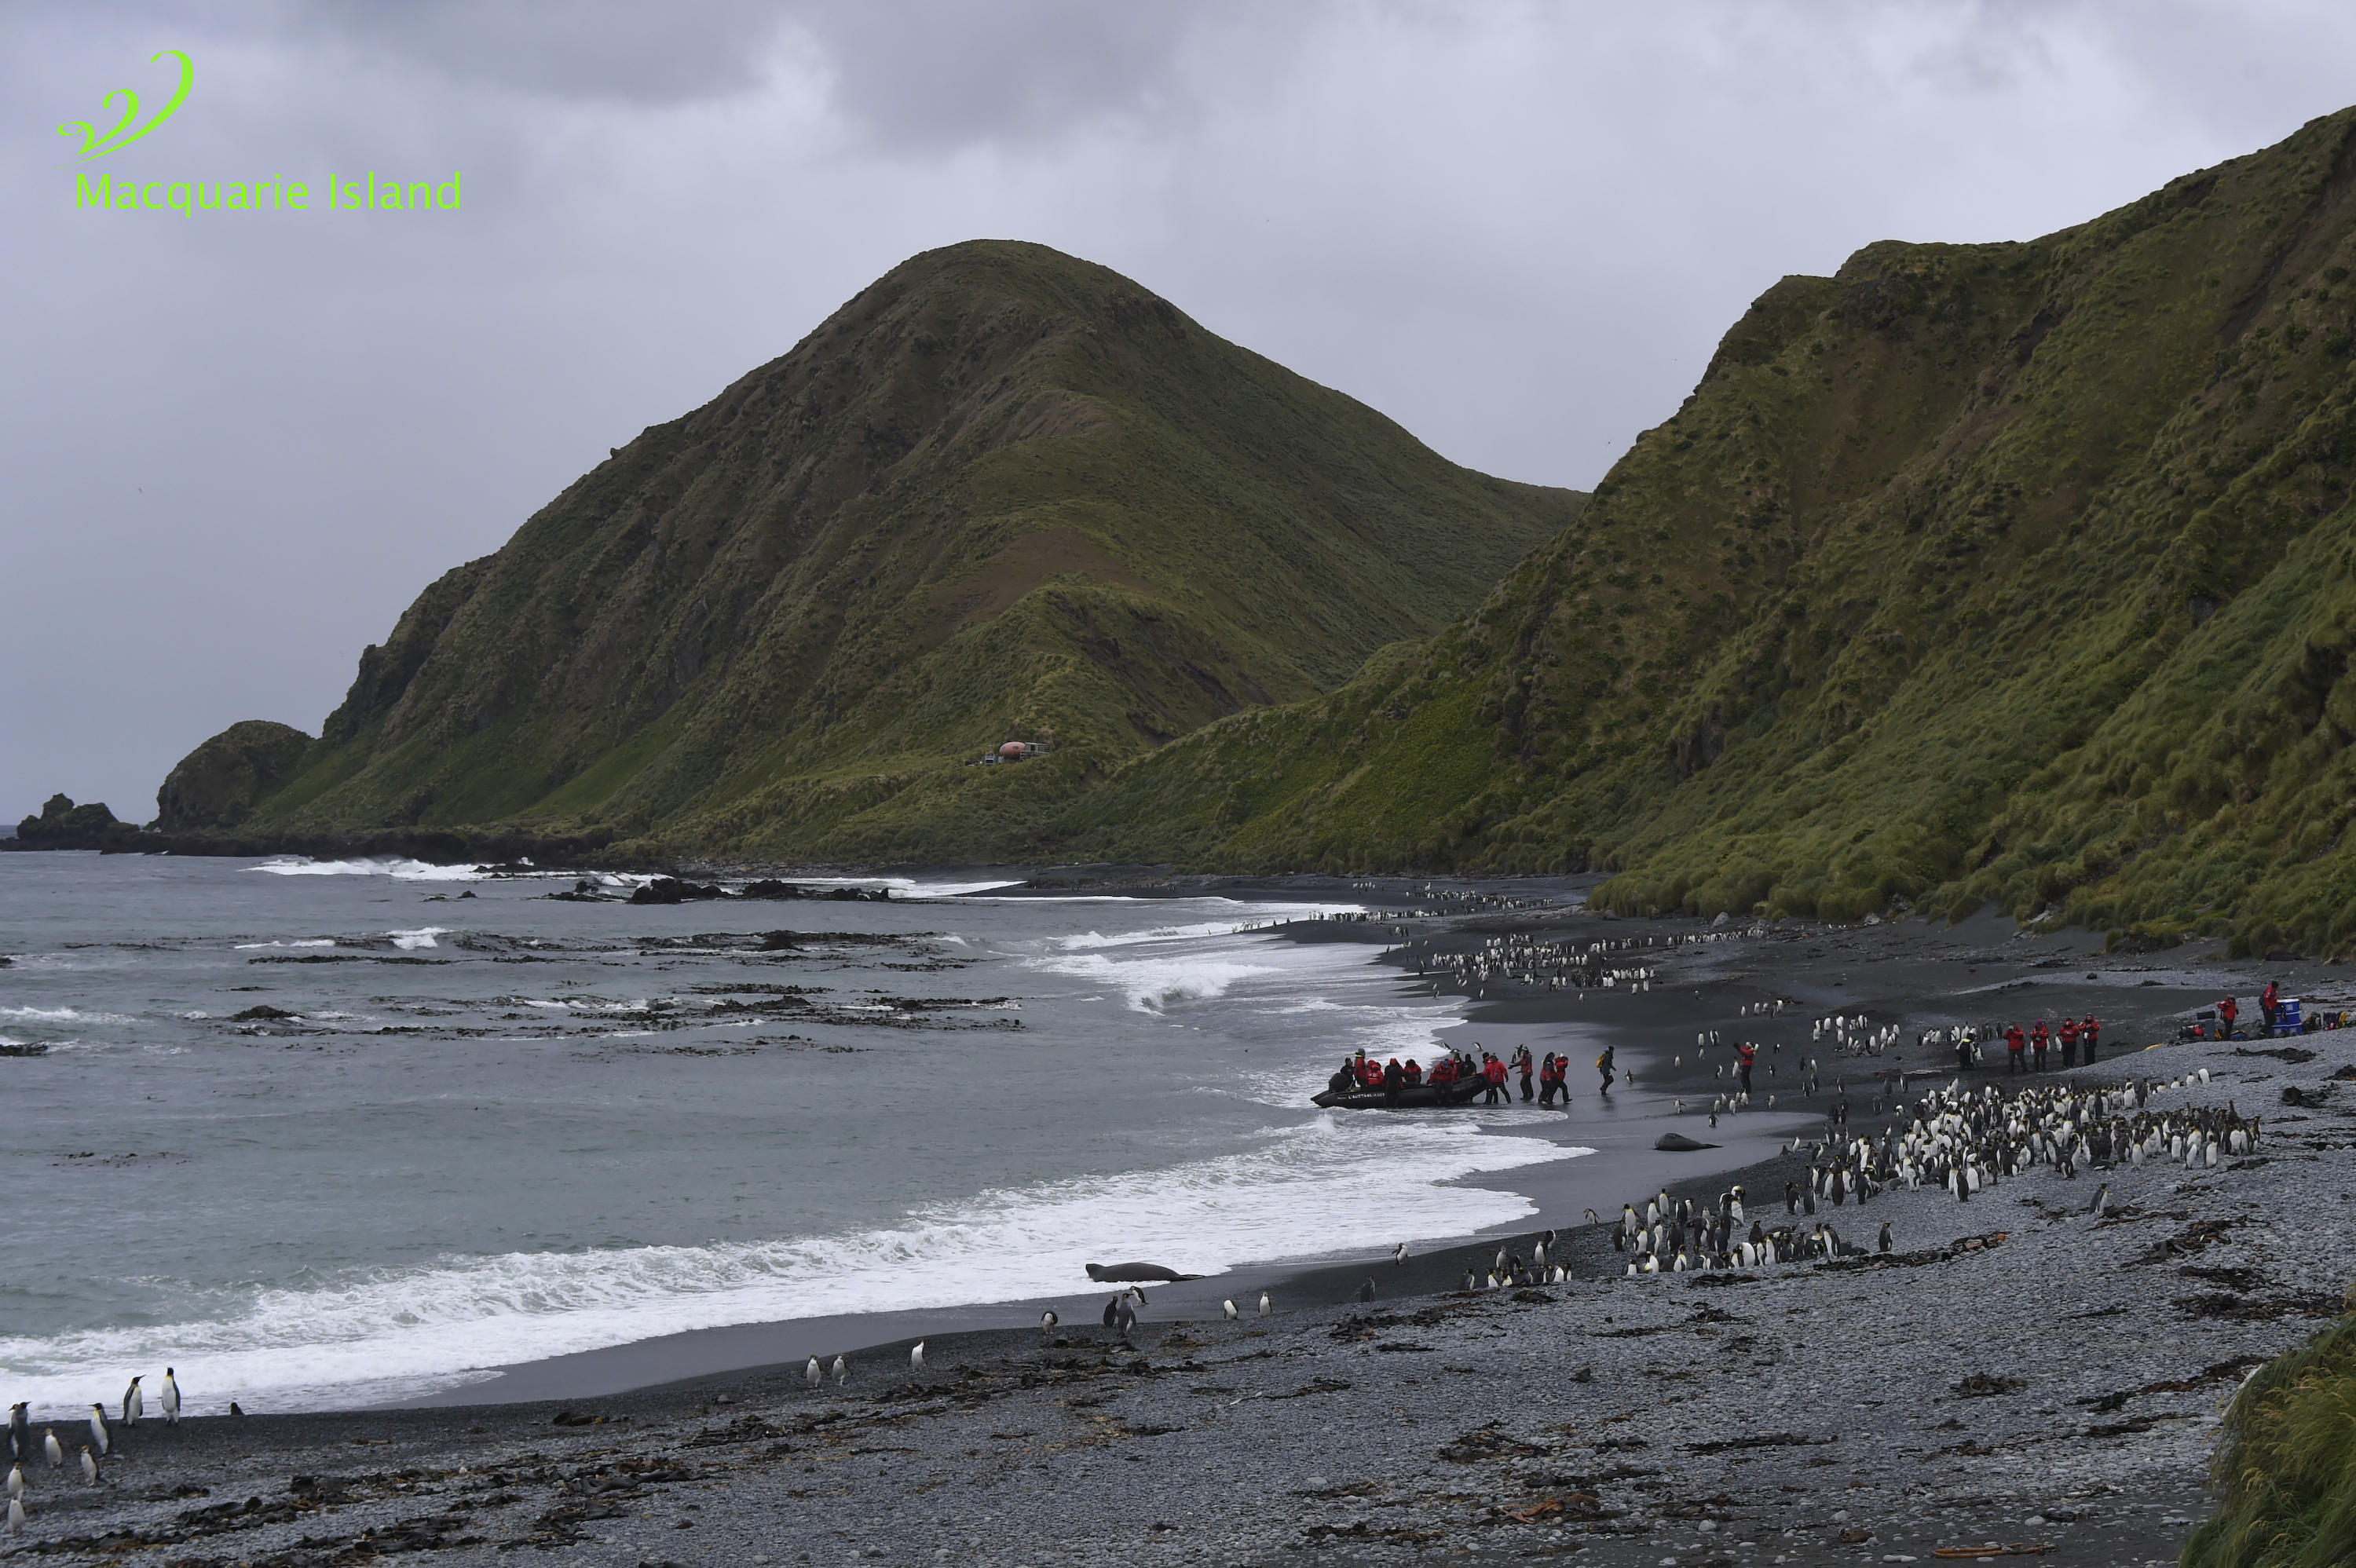 The Subantarctic Islands Expedition